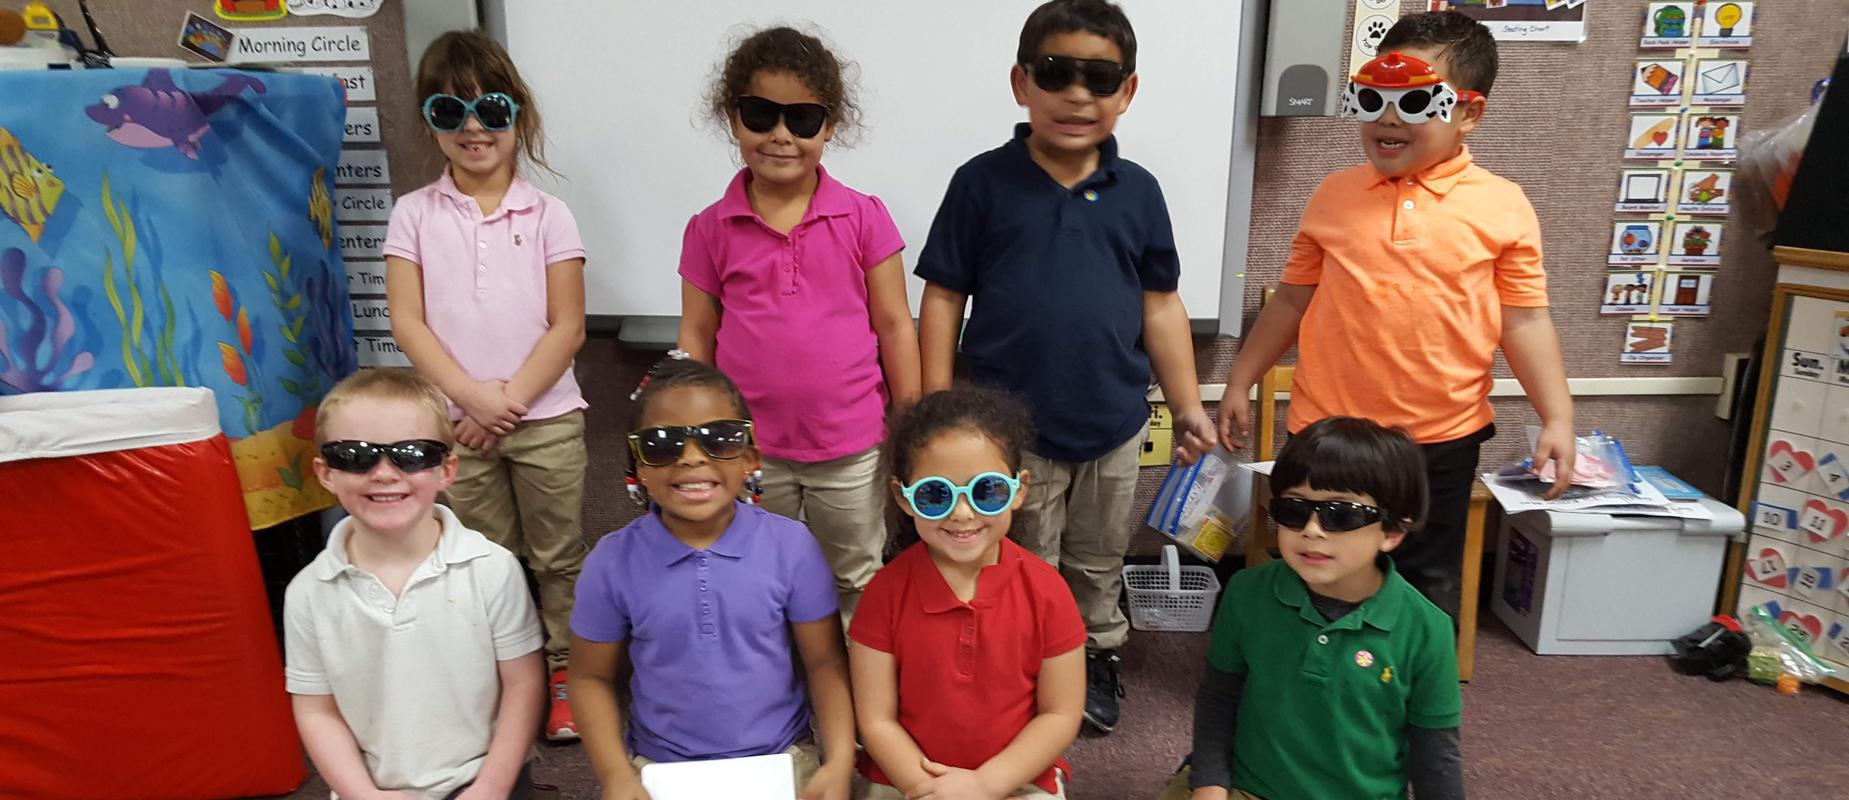 pre-k students posing with sunglasses on